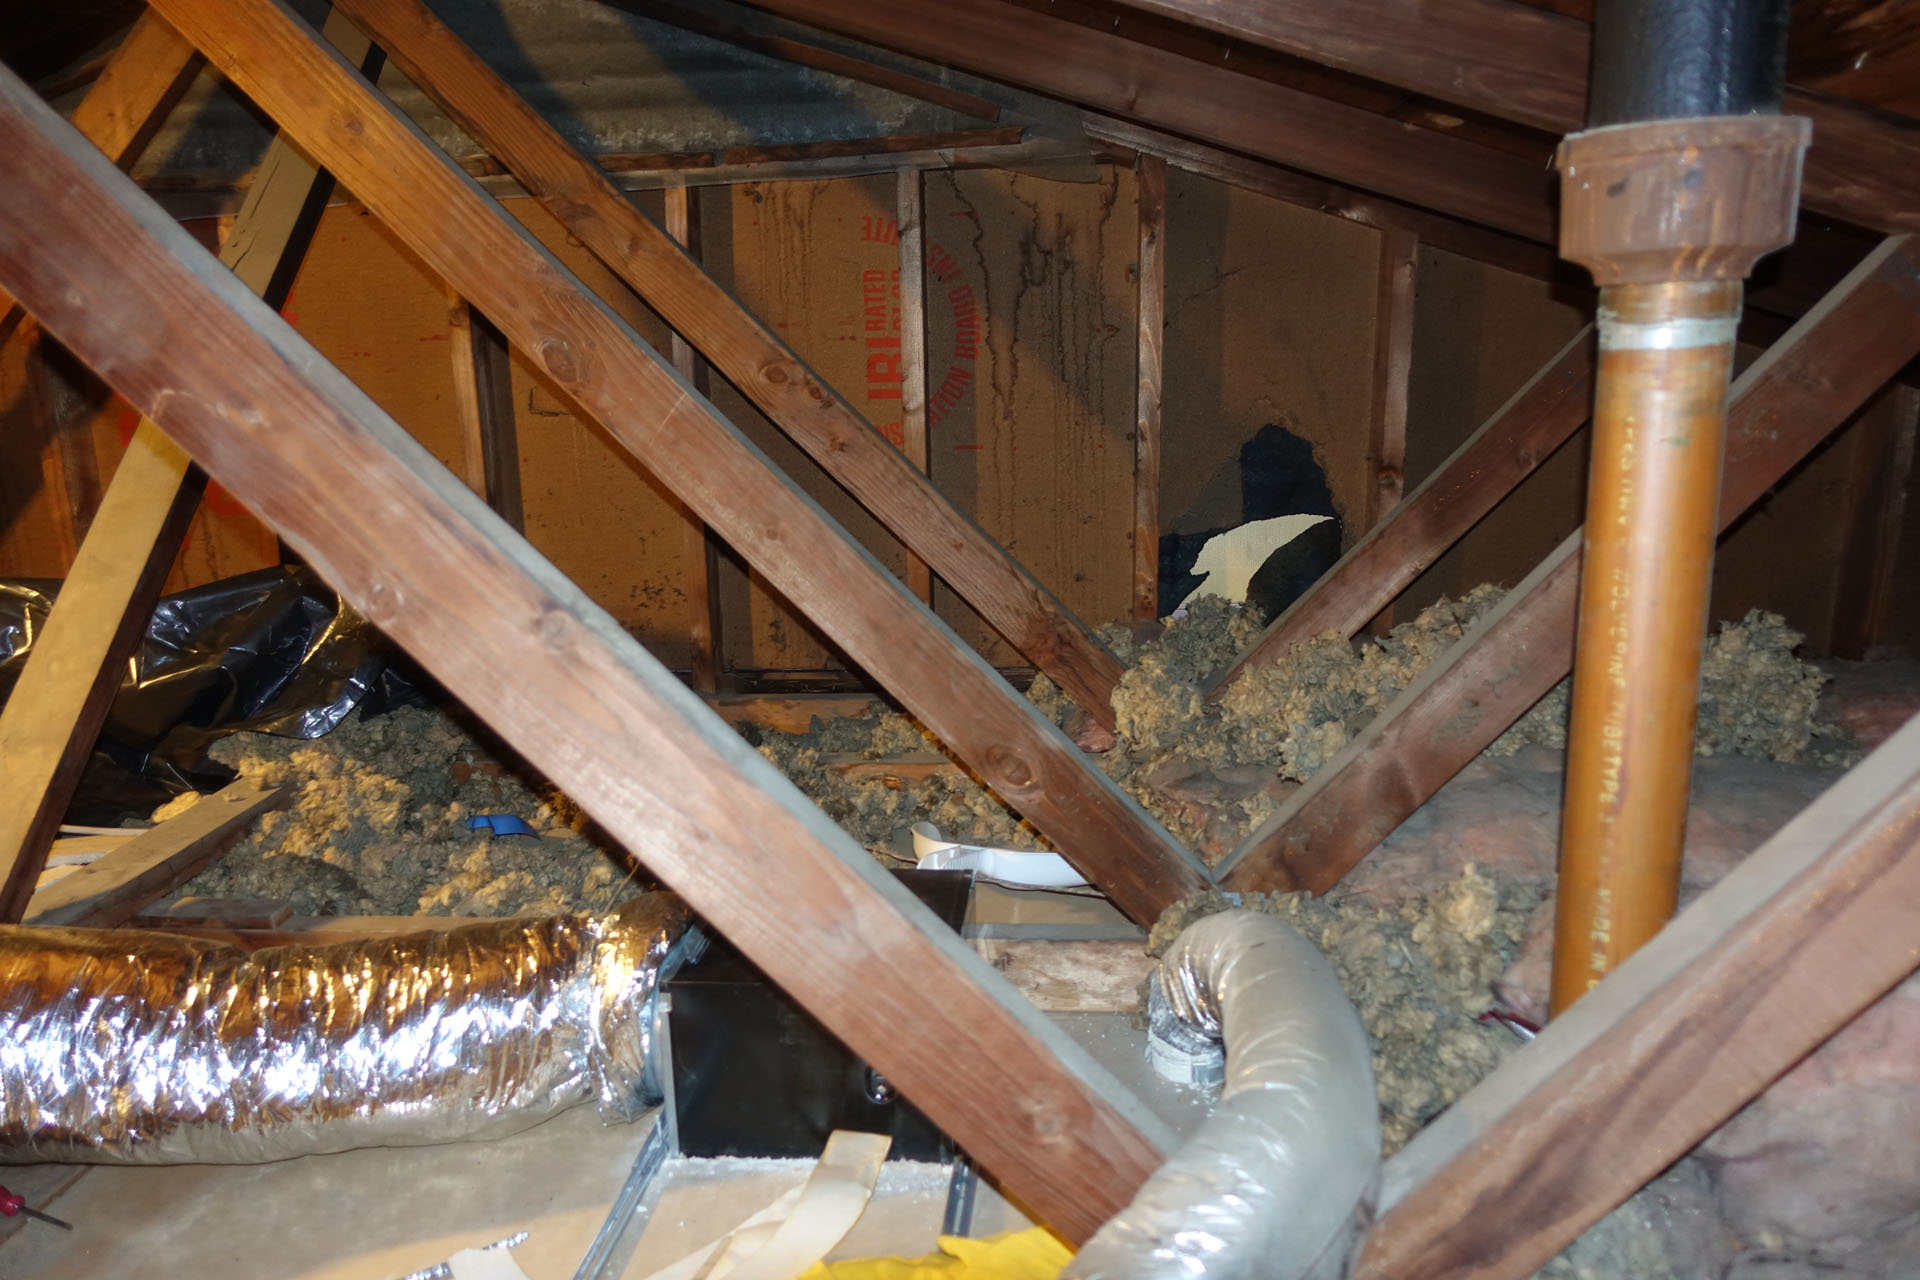 Attic Insulation after testing attic for mold-dsc00778.jpg